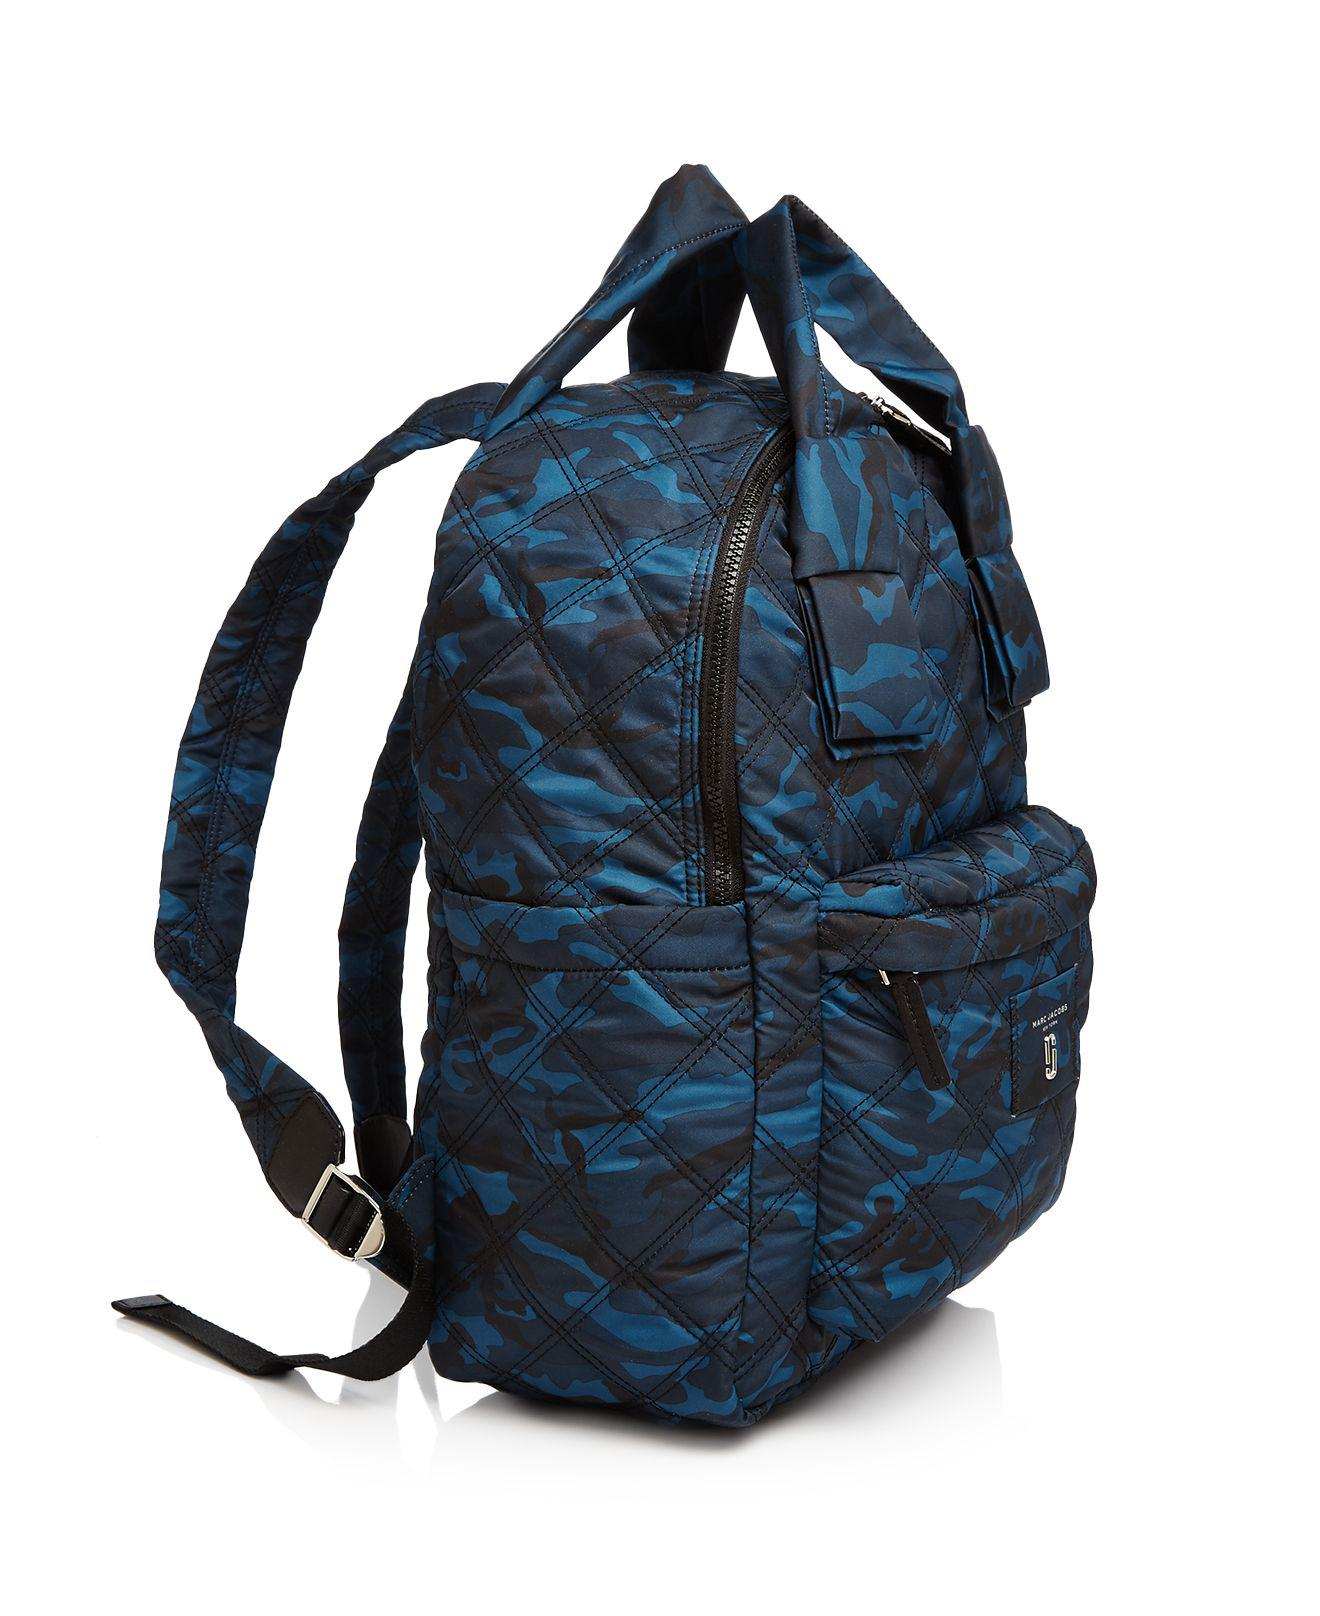 ebdbe0491a25 Lyst - Marc Jacobs Knot Camo Print Large Nylon Backpack in Blue